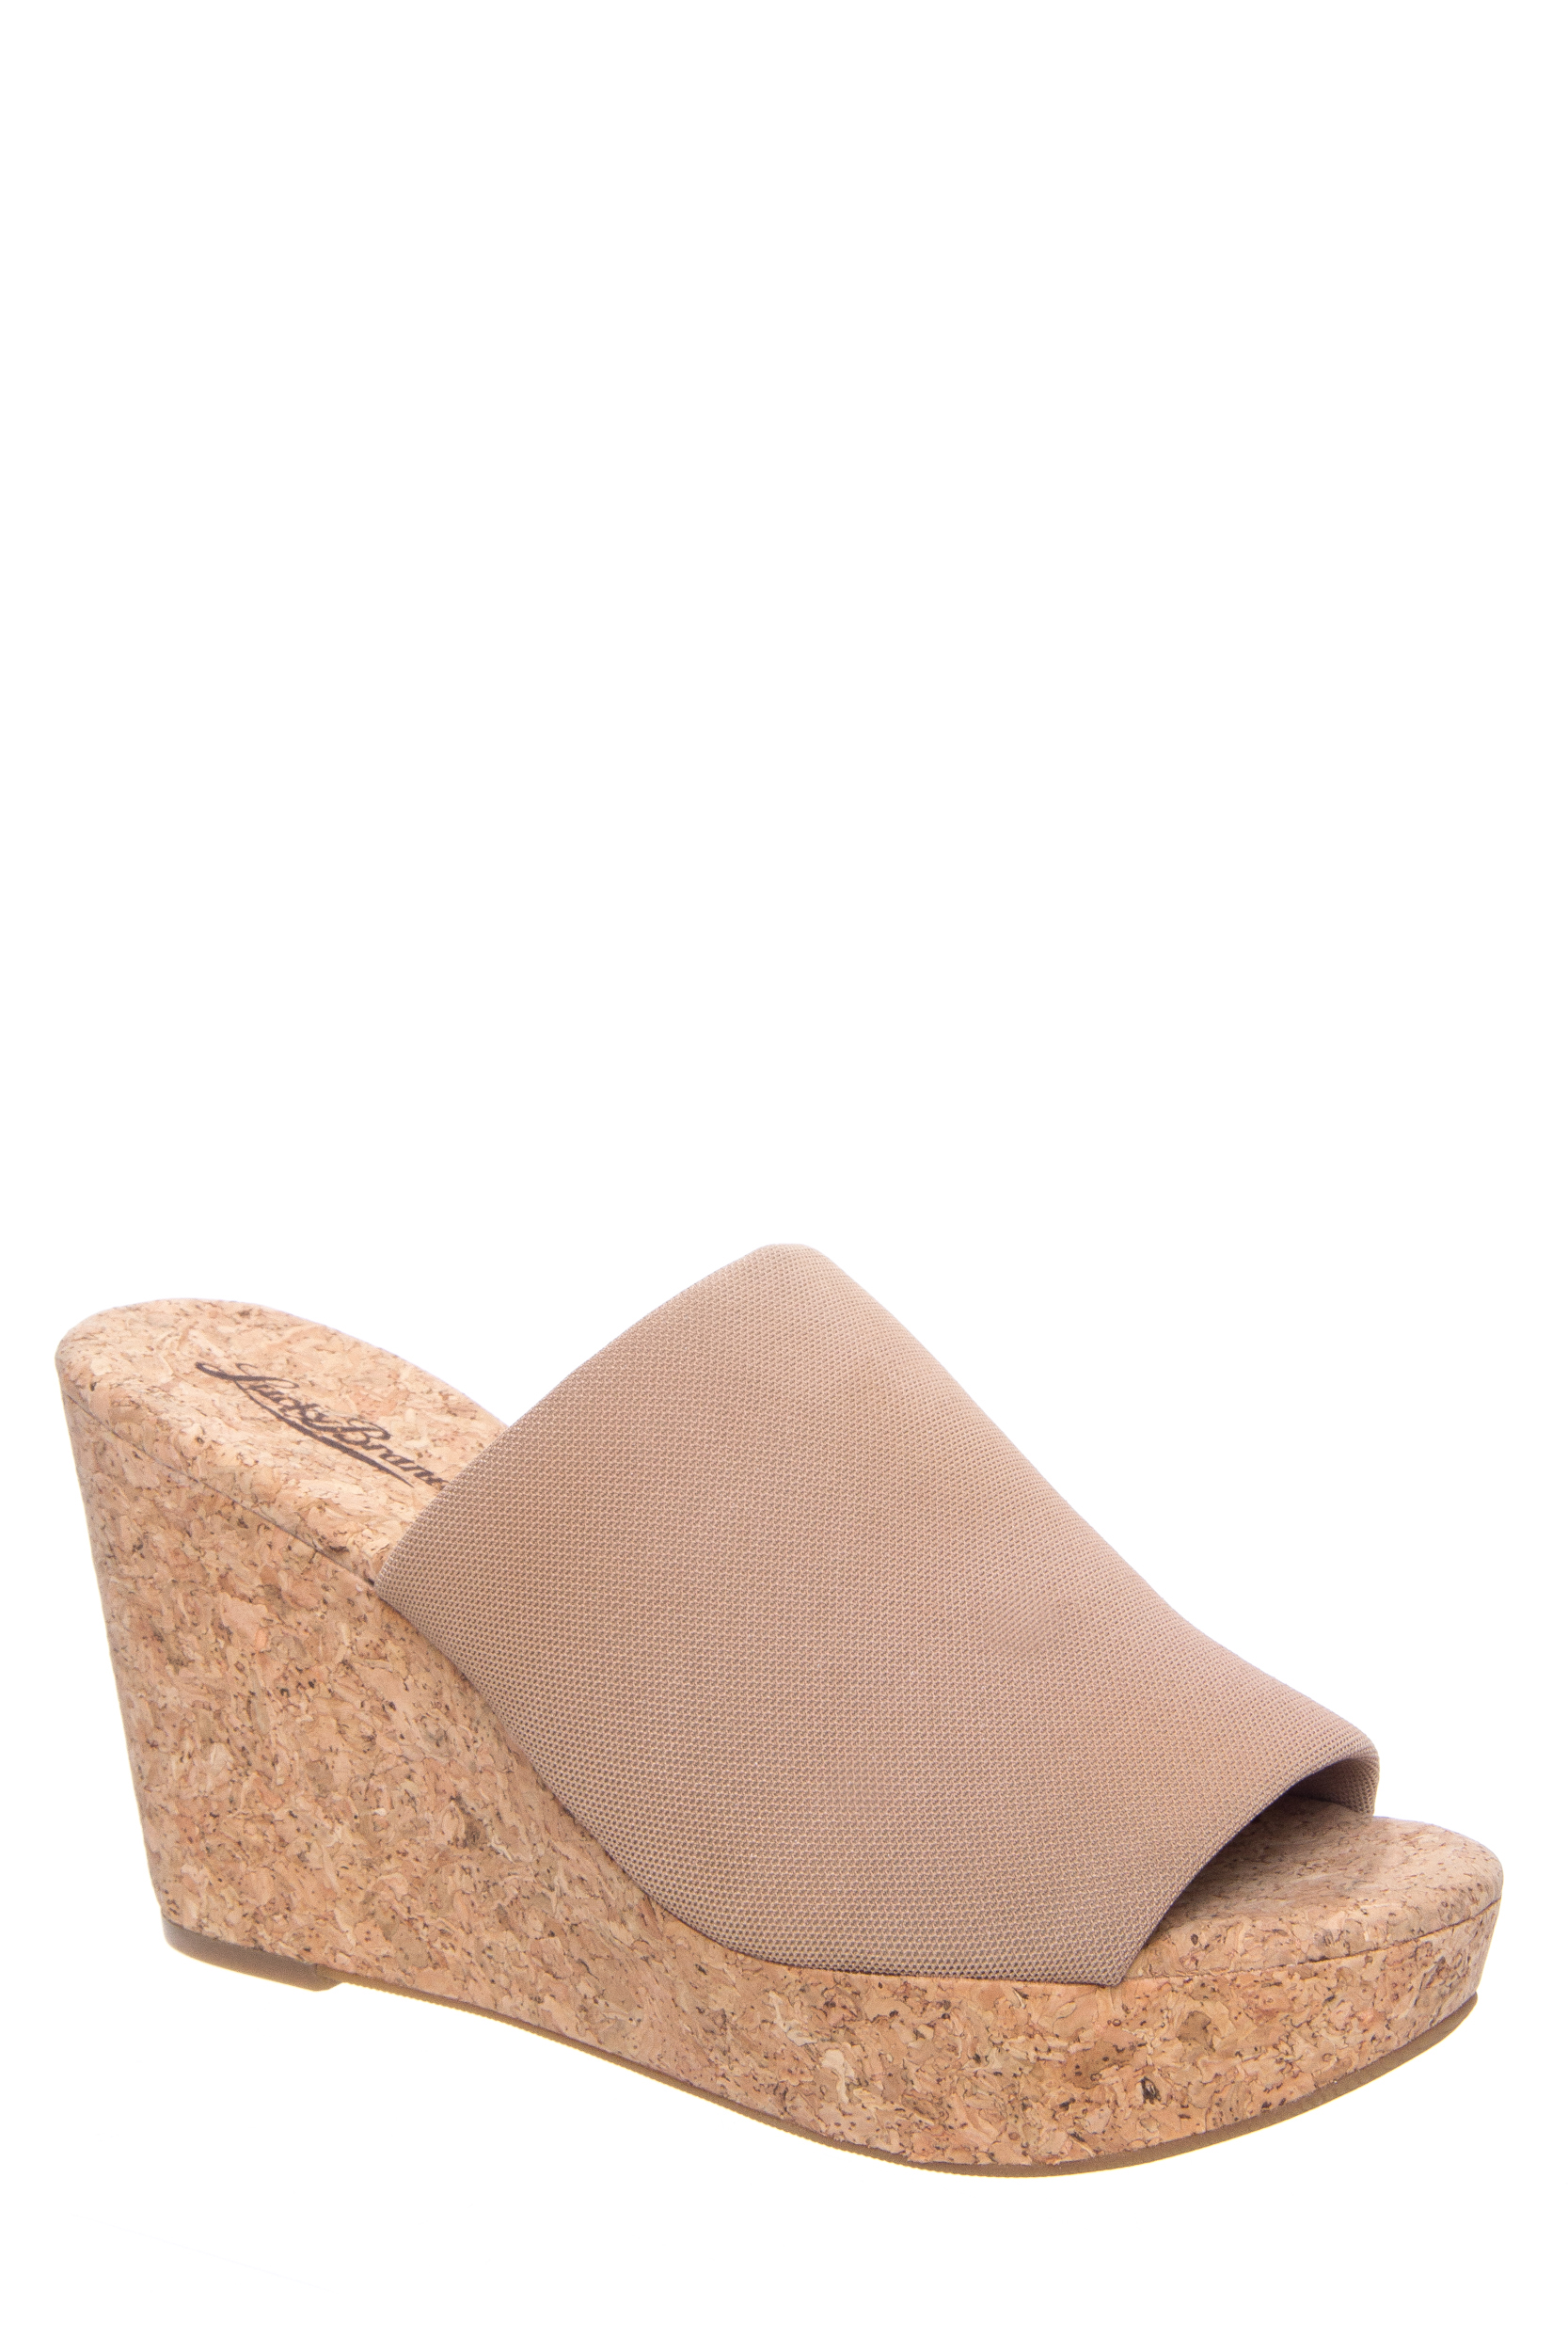 Lucky Brand Marilynn High Wedge Platform Sandals - Nomad